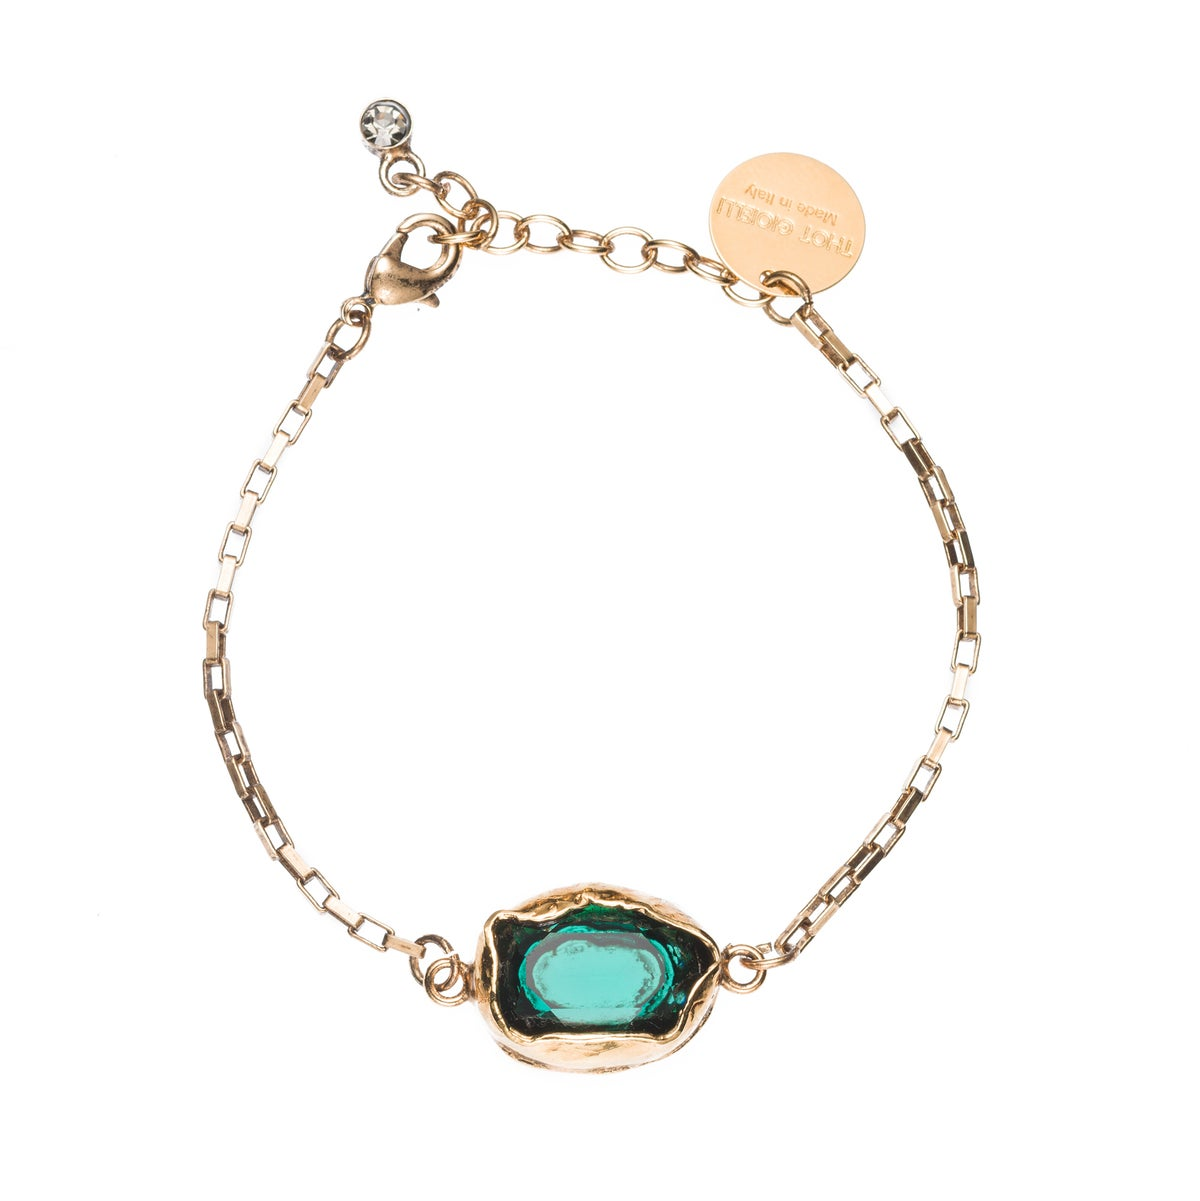 Image of BRACELET/ BRACCIALETTO BR110 GOLD EMERALD